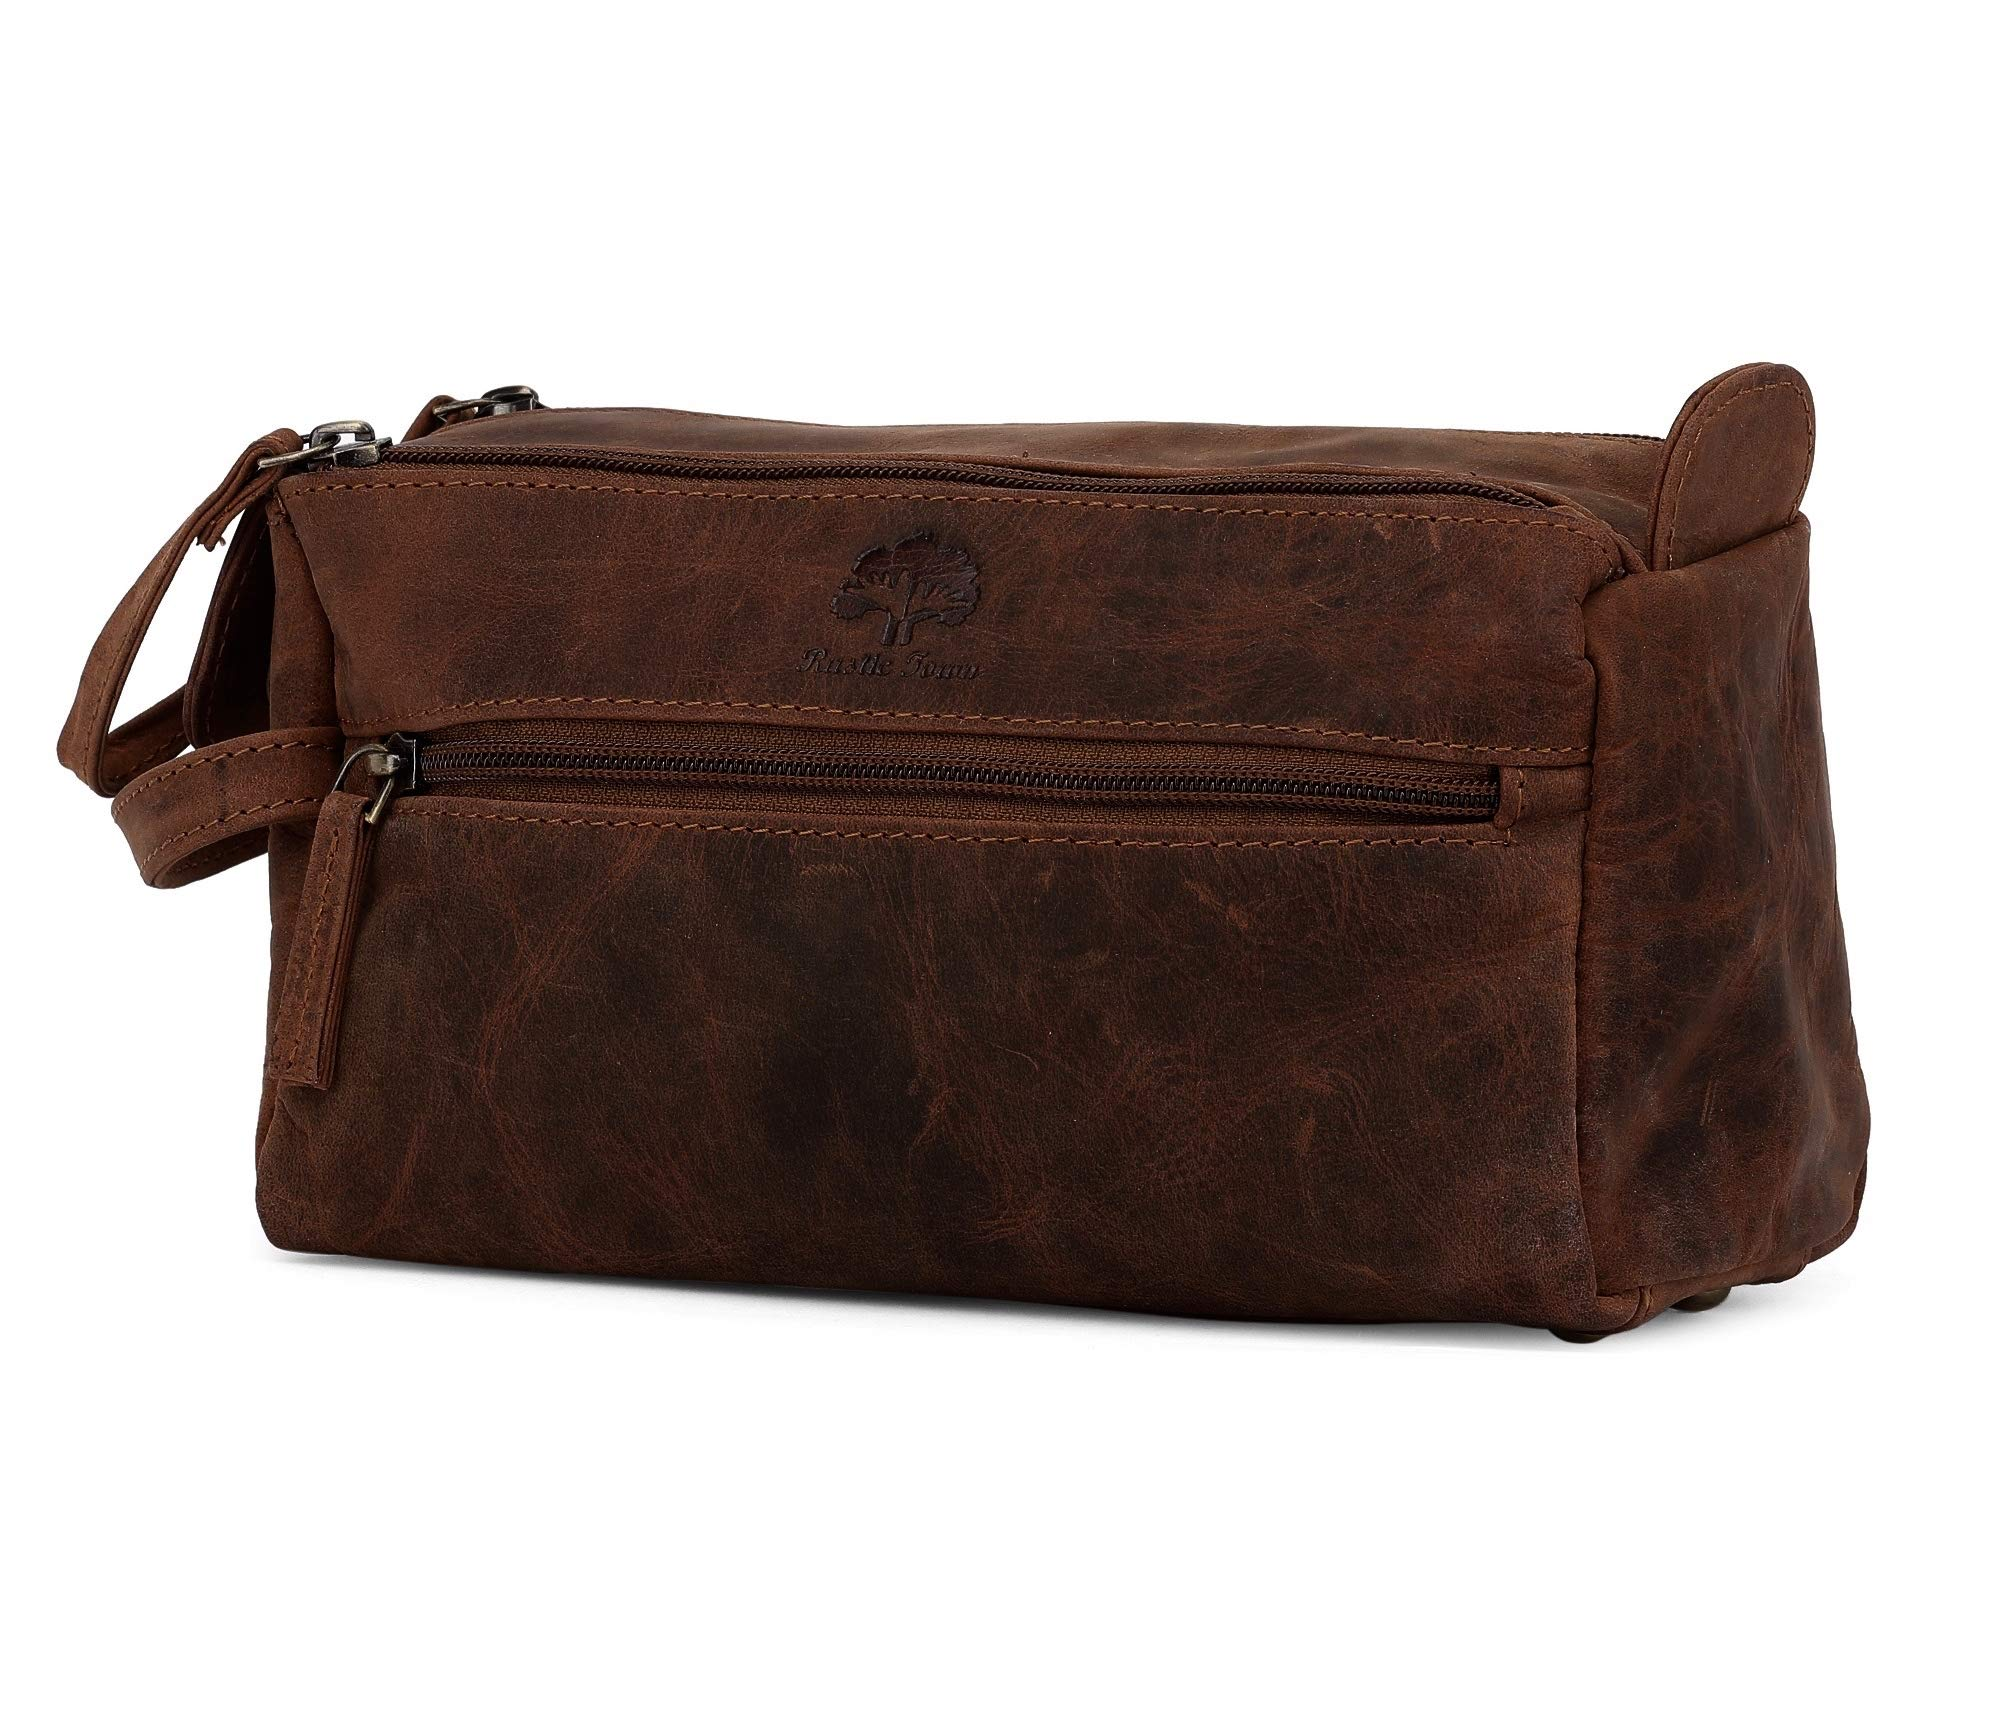 Genuine Leather Travel Toiletry Bag - Hygiene Organizer Dopp Kit By Rustic Town (Dark Brown)